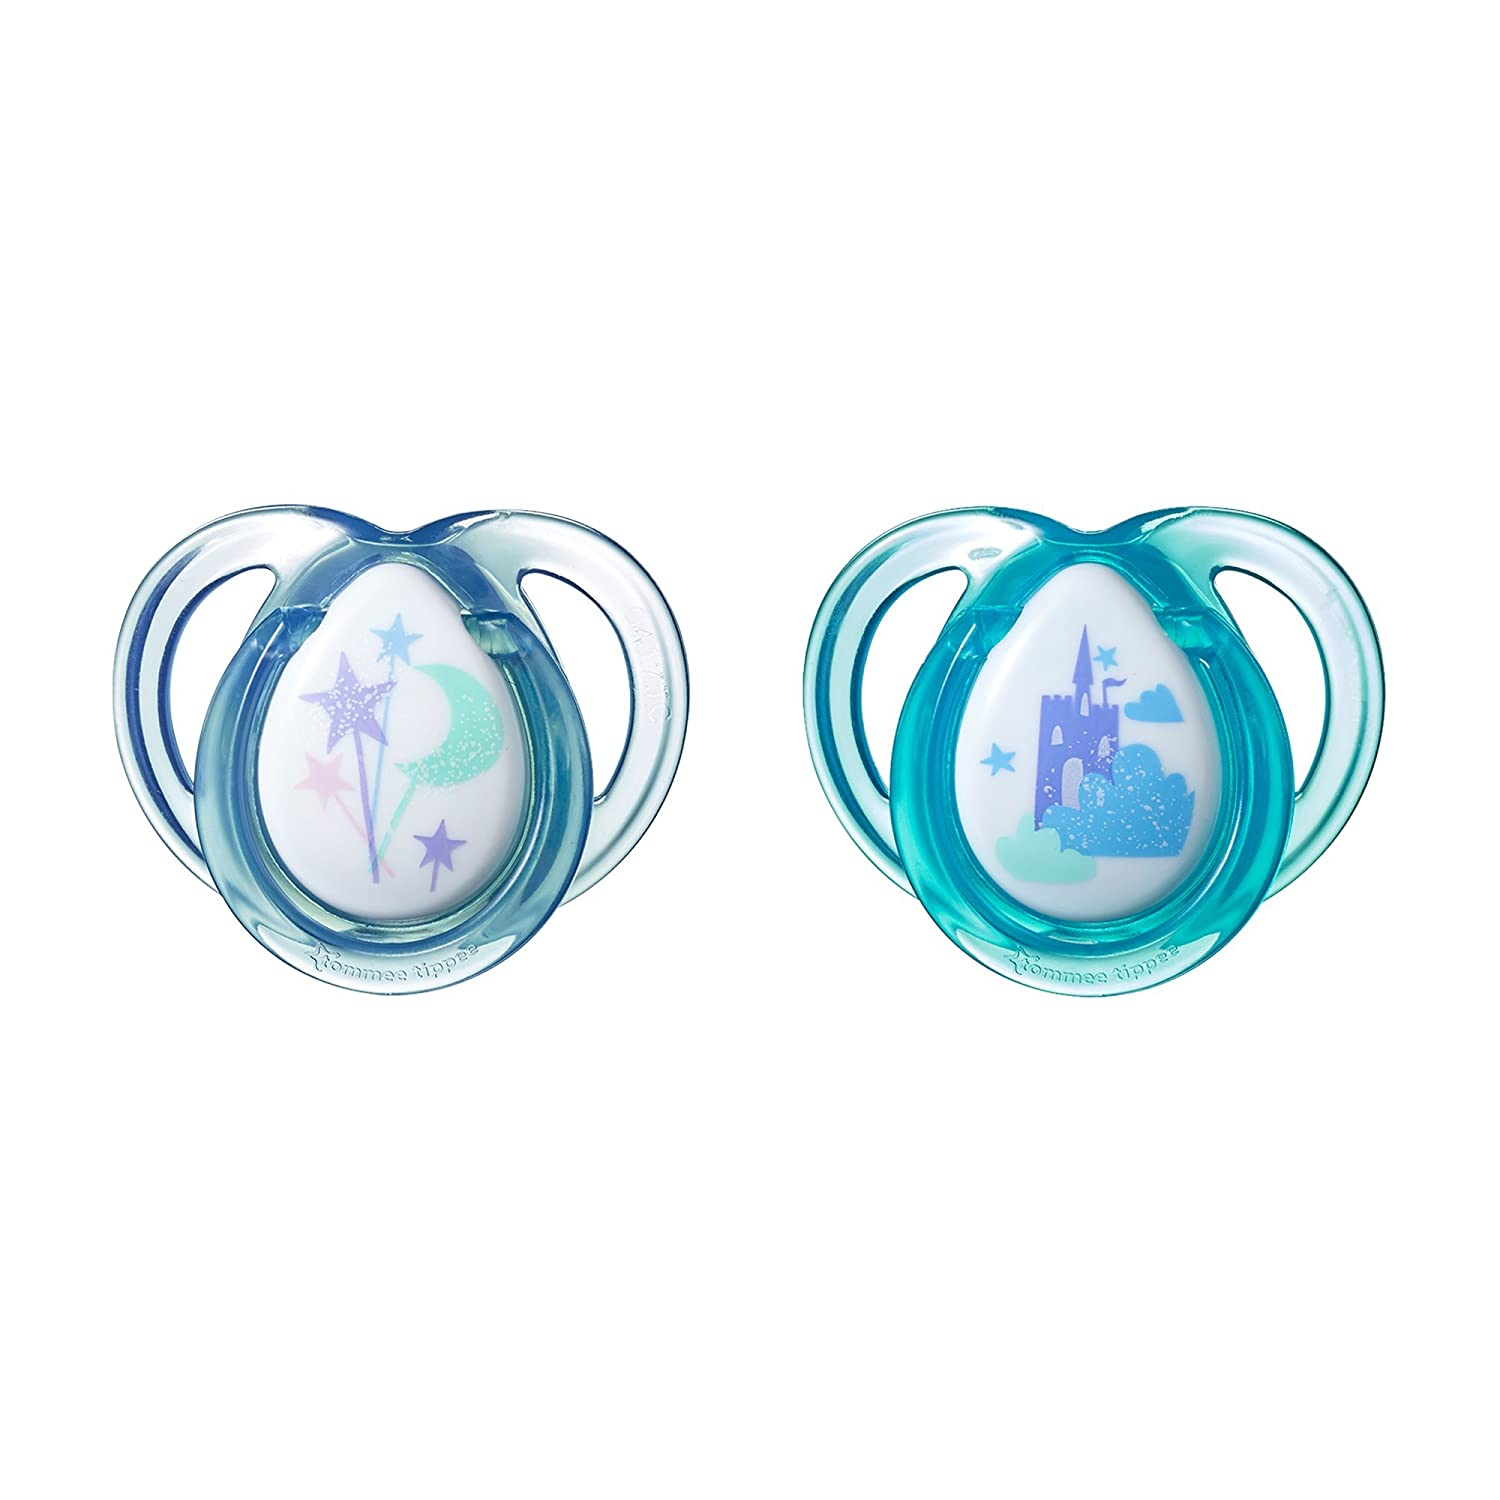 Tommee Tippee Closer To Nature Everyday Pacifier, Blue, 0-6 Months, 2 Count (Colors will vary) 533077